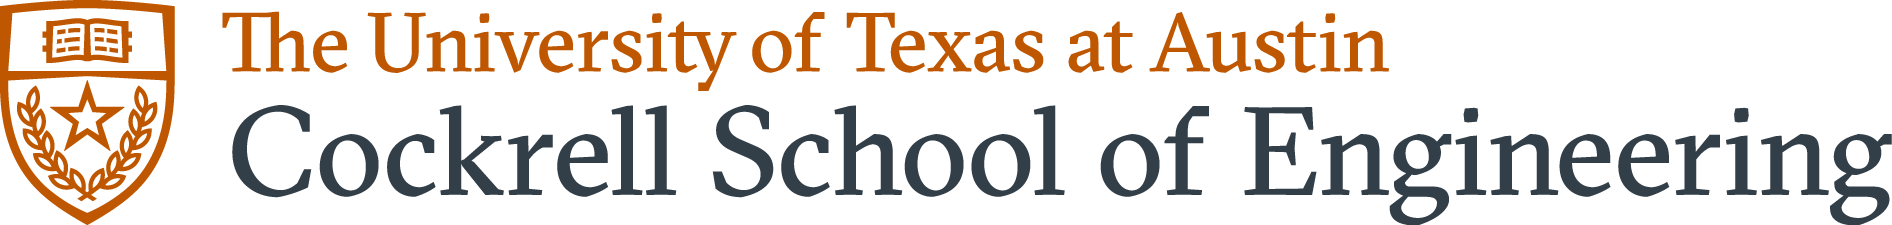 The University of Texas at Austin Cockrell School of Engineering